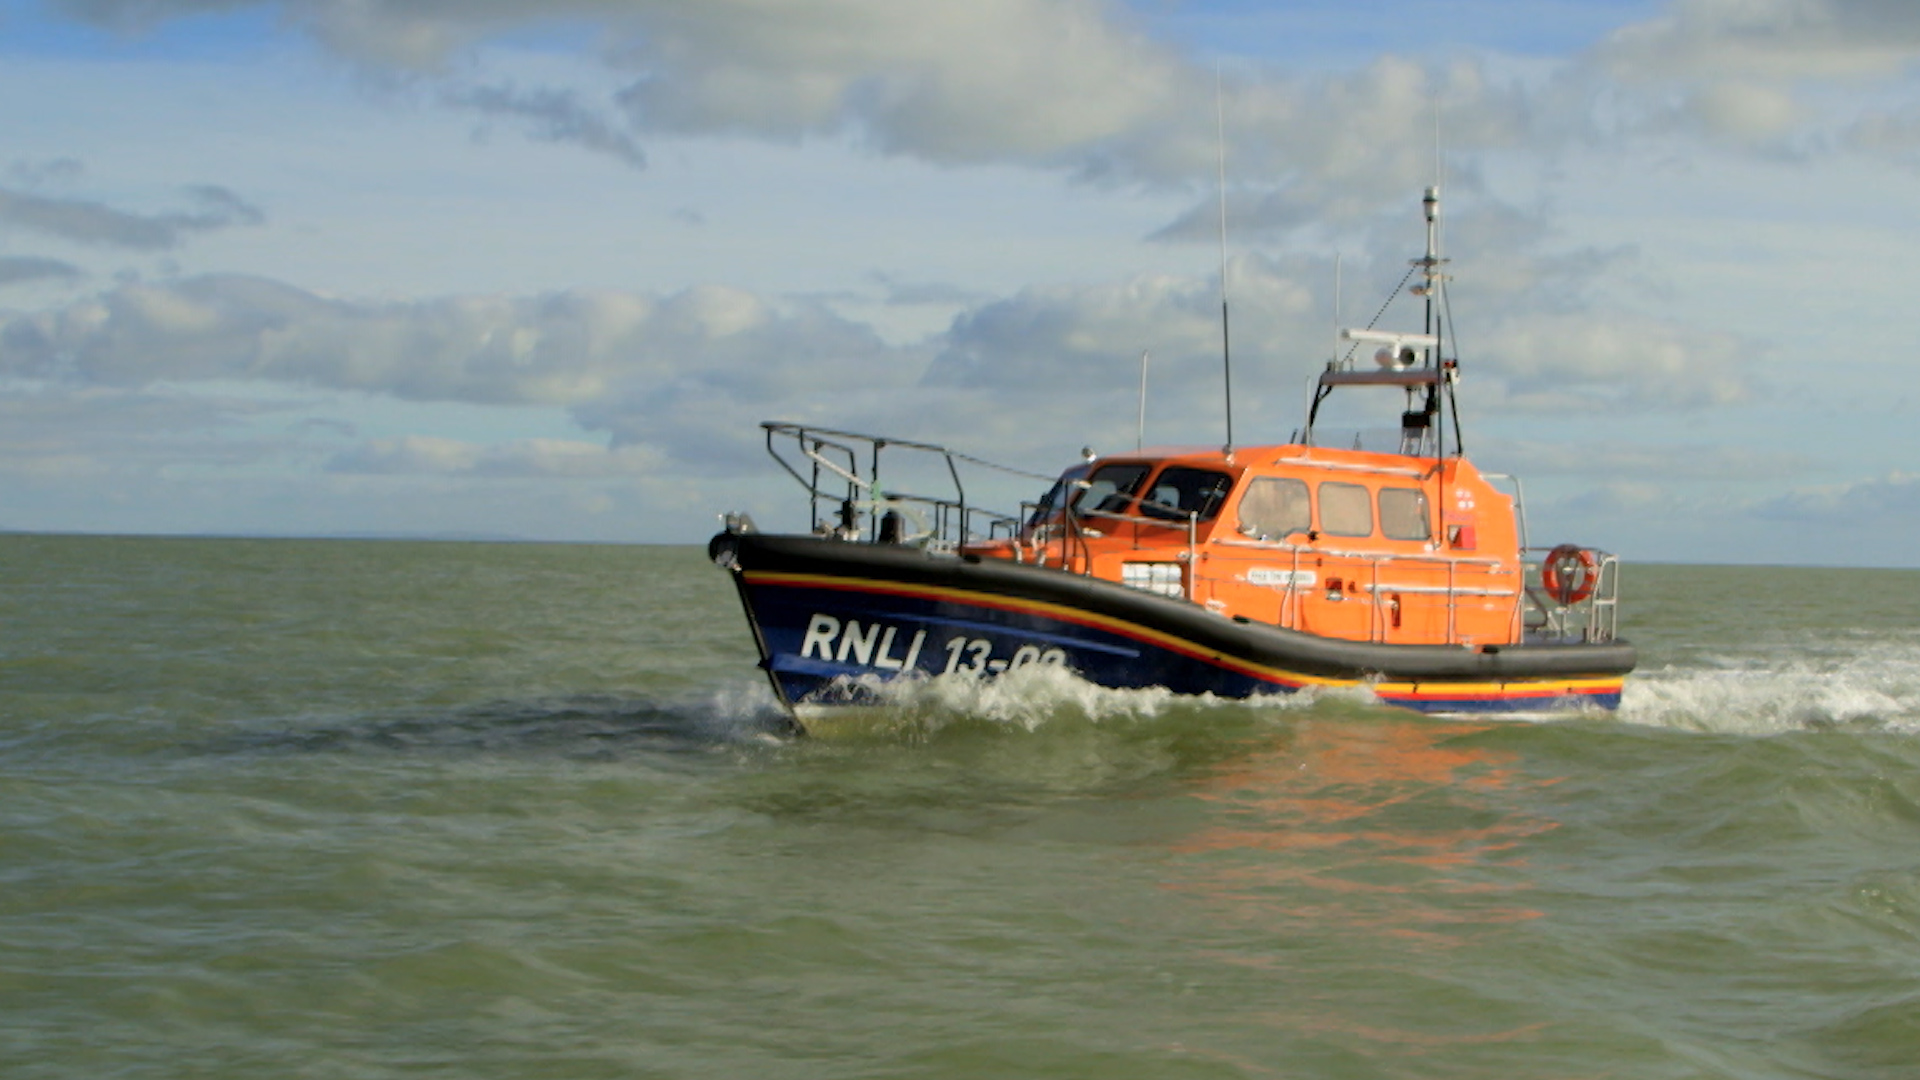 RNLI Shannon class lifeboat out on a sea trial